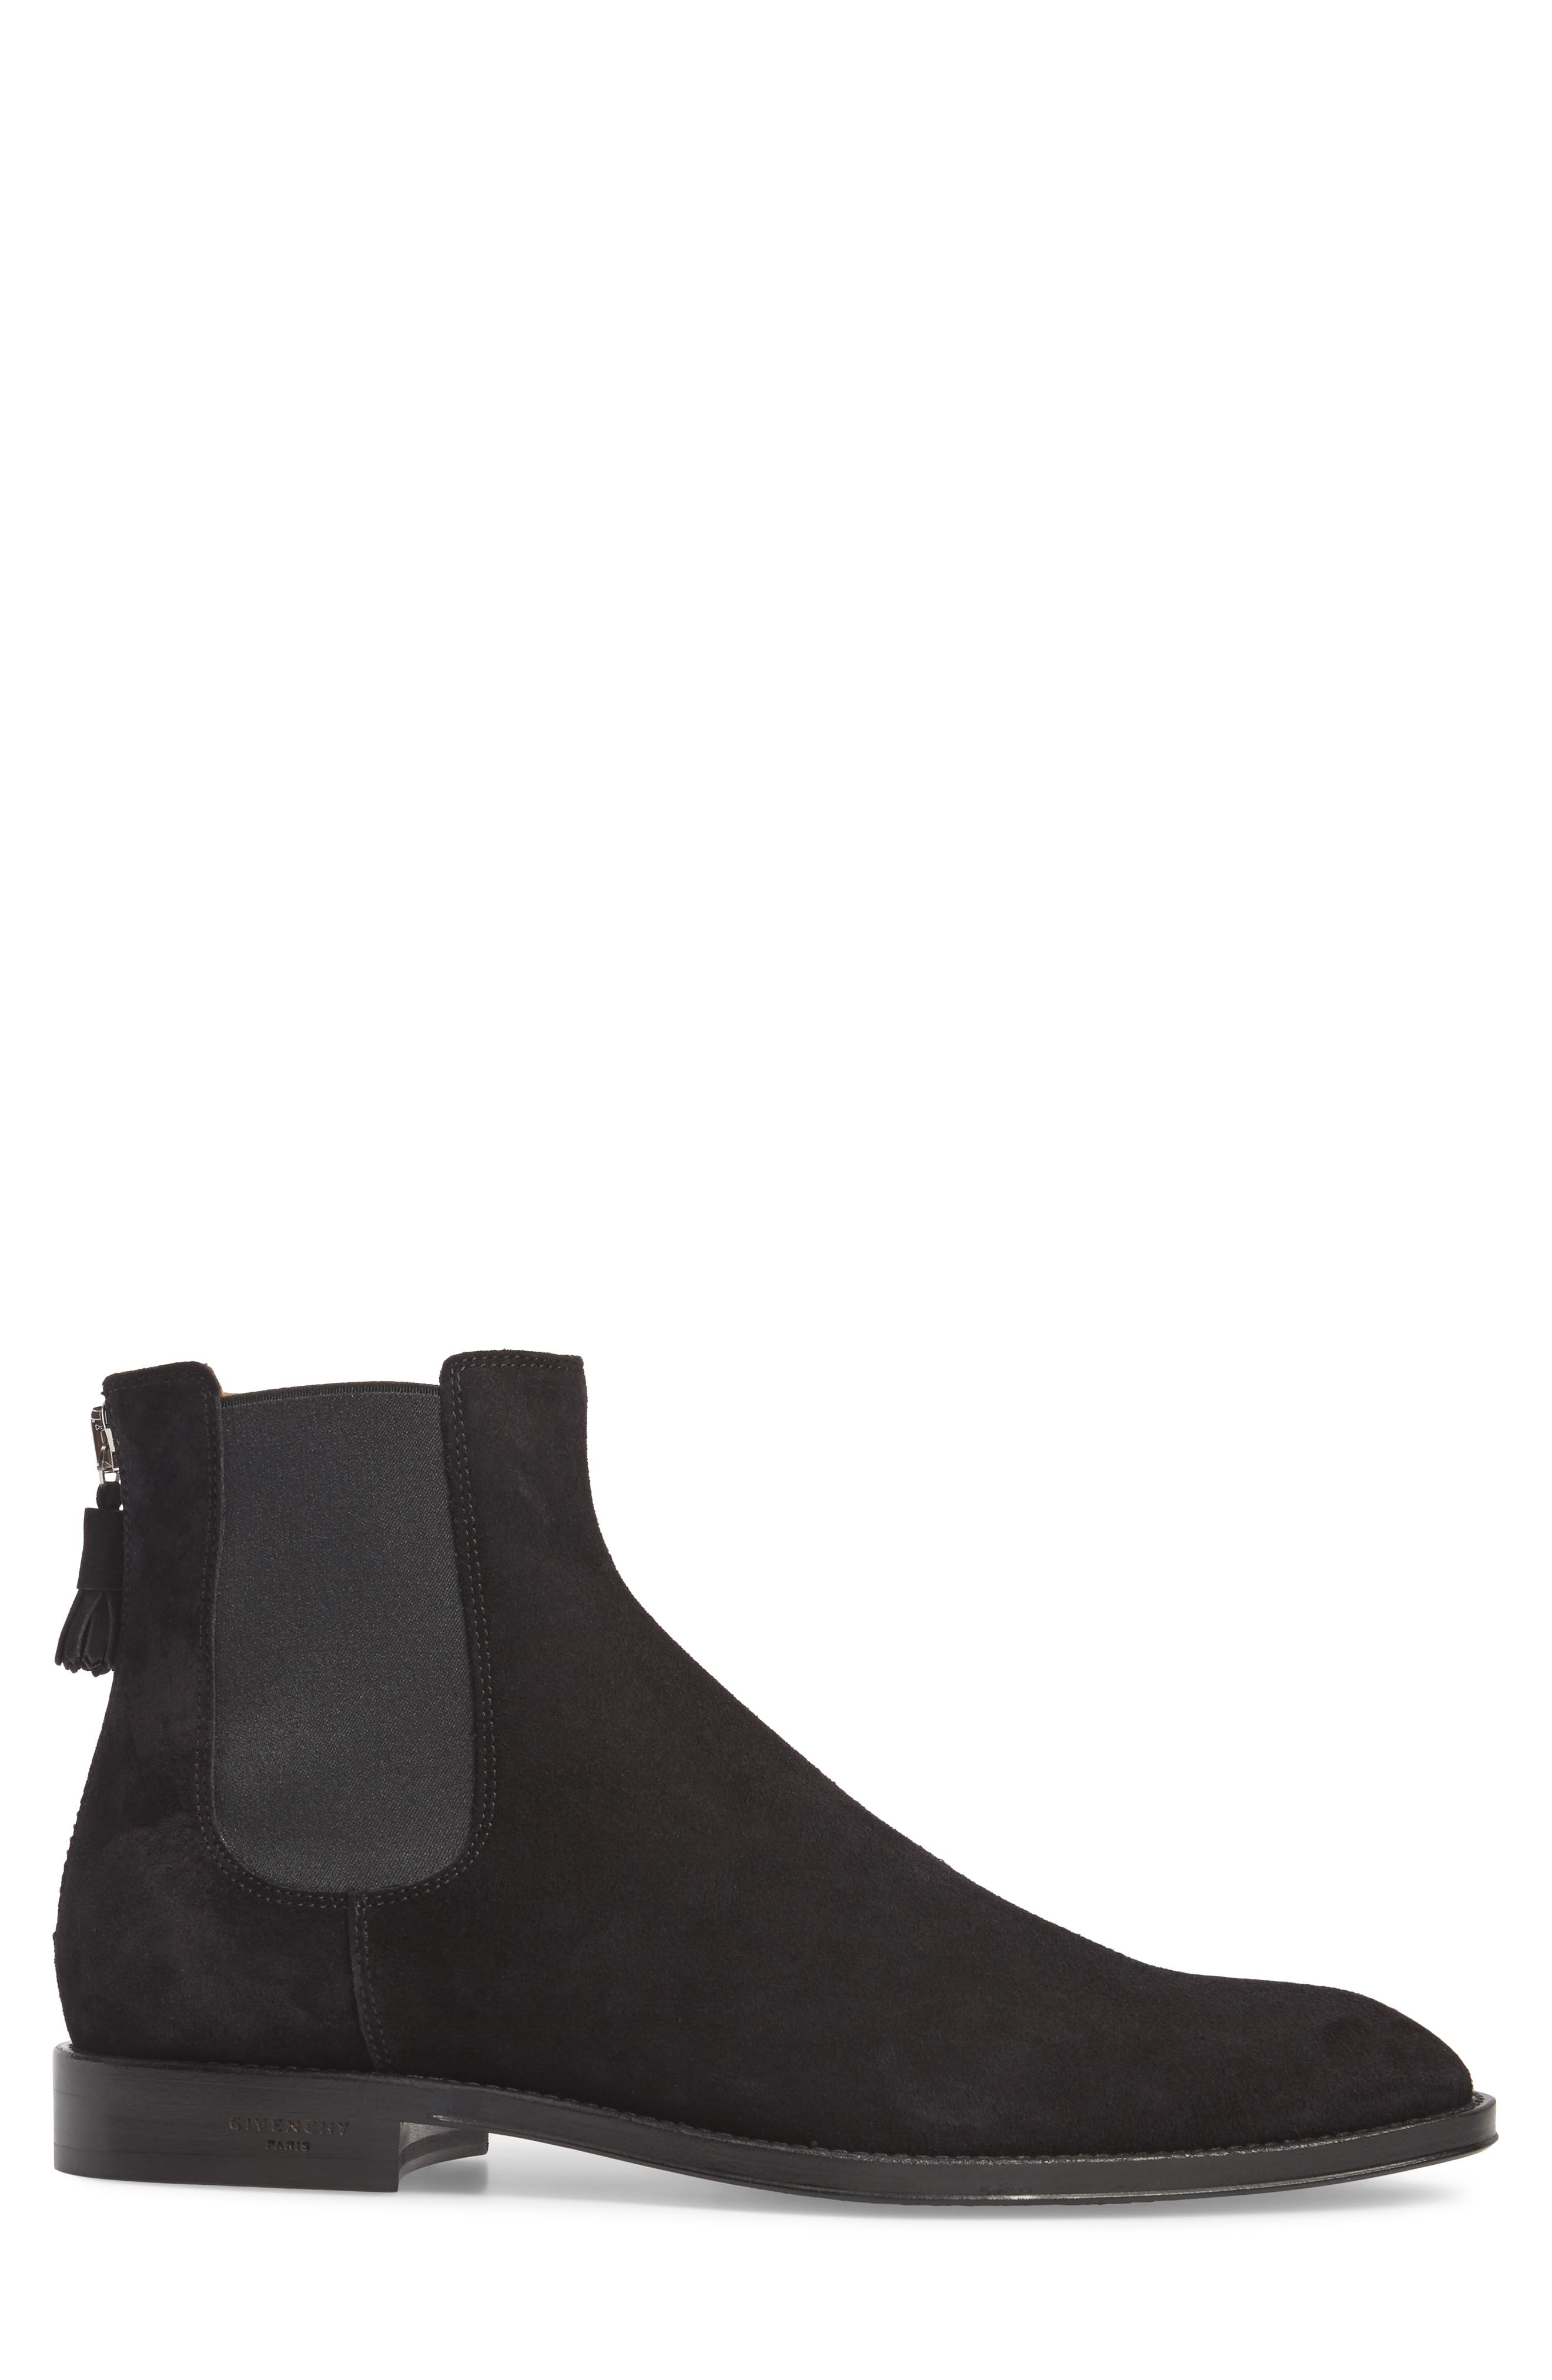 Chelsea Boot,                             Alternate thumbnail 3, color,                             001